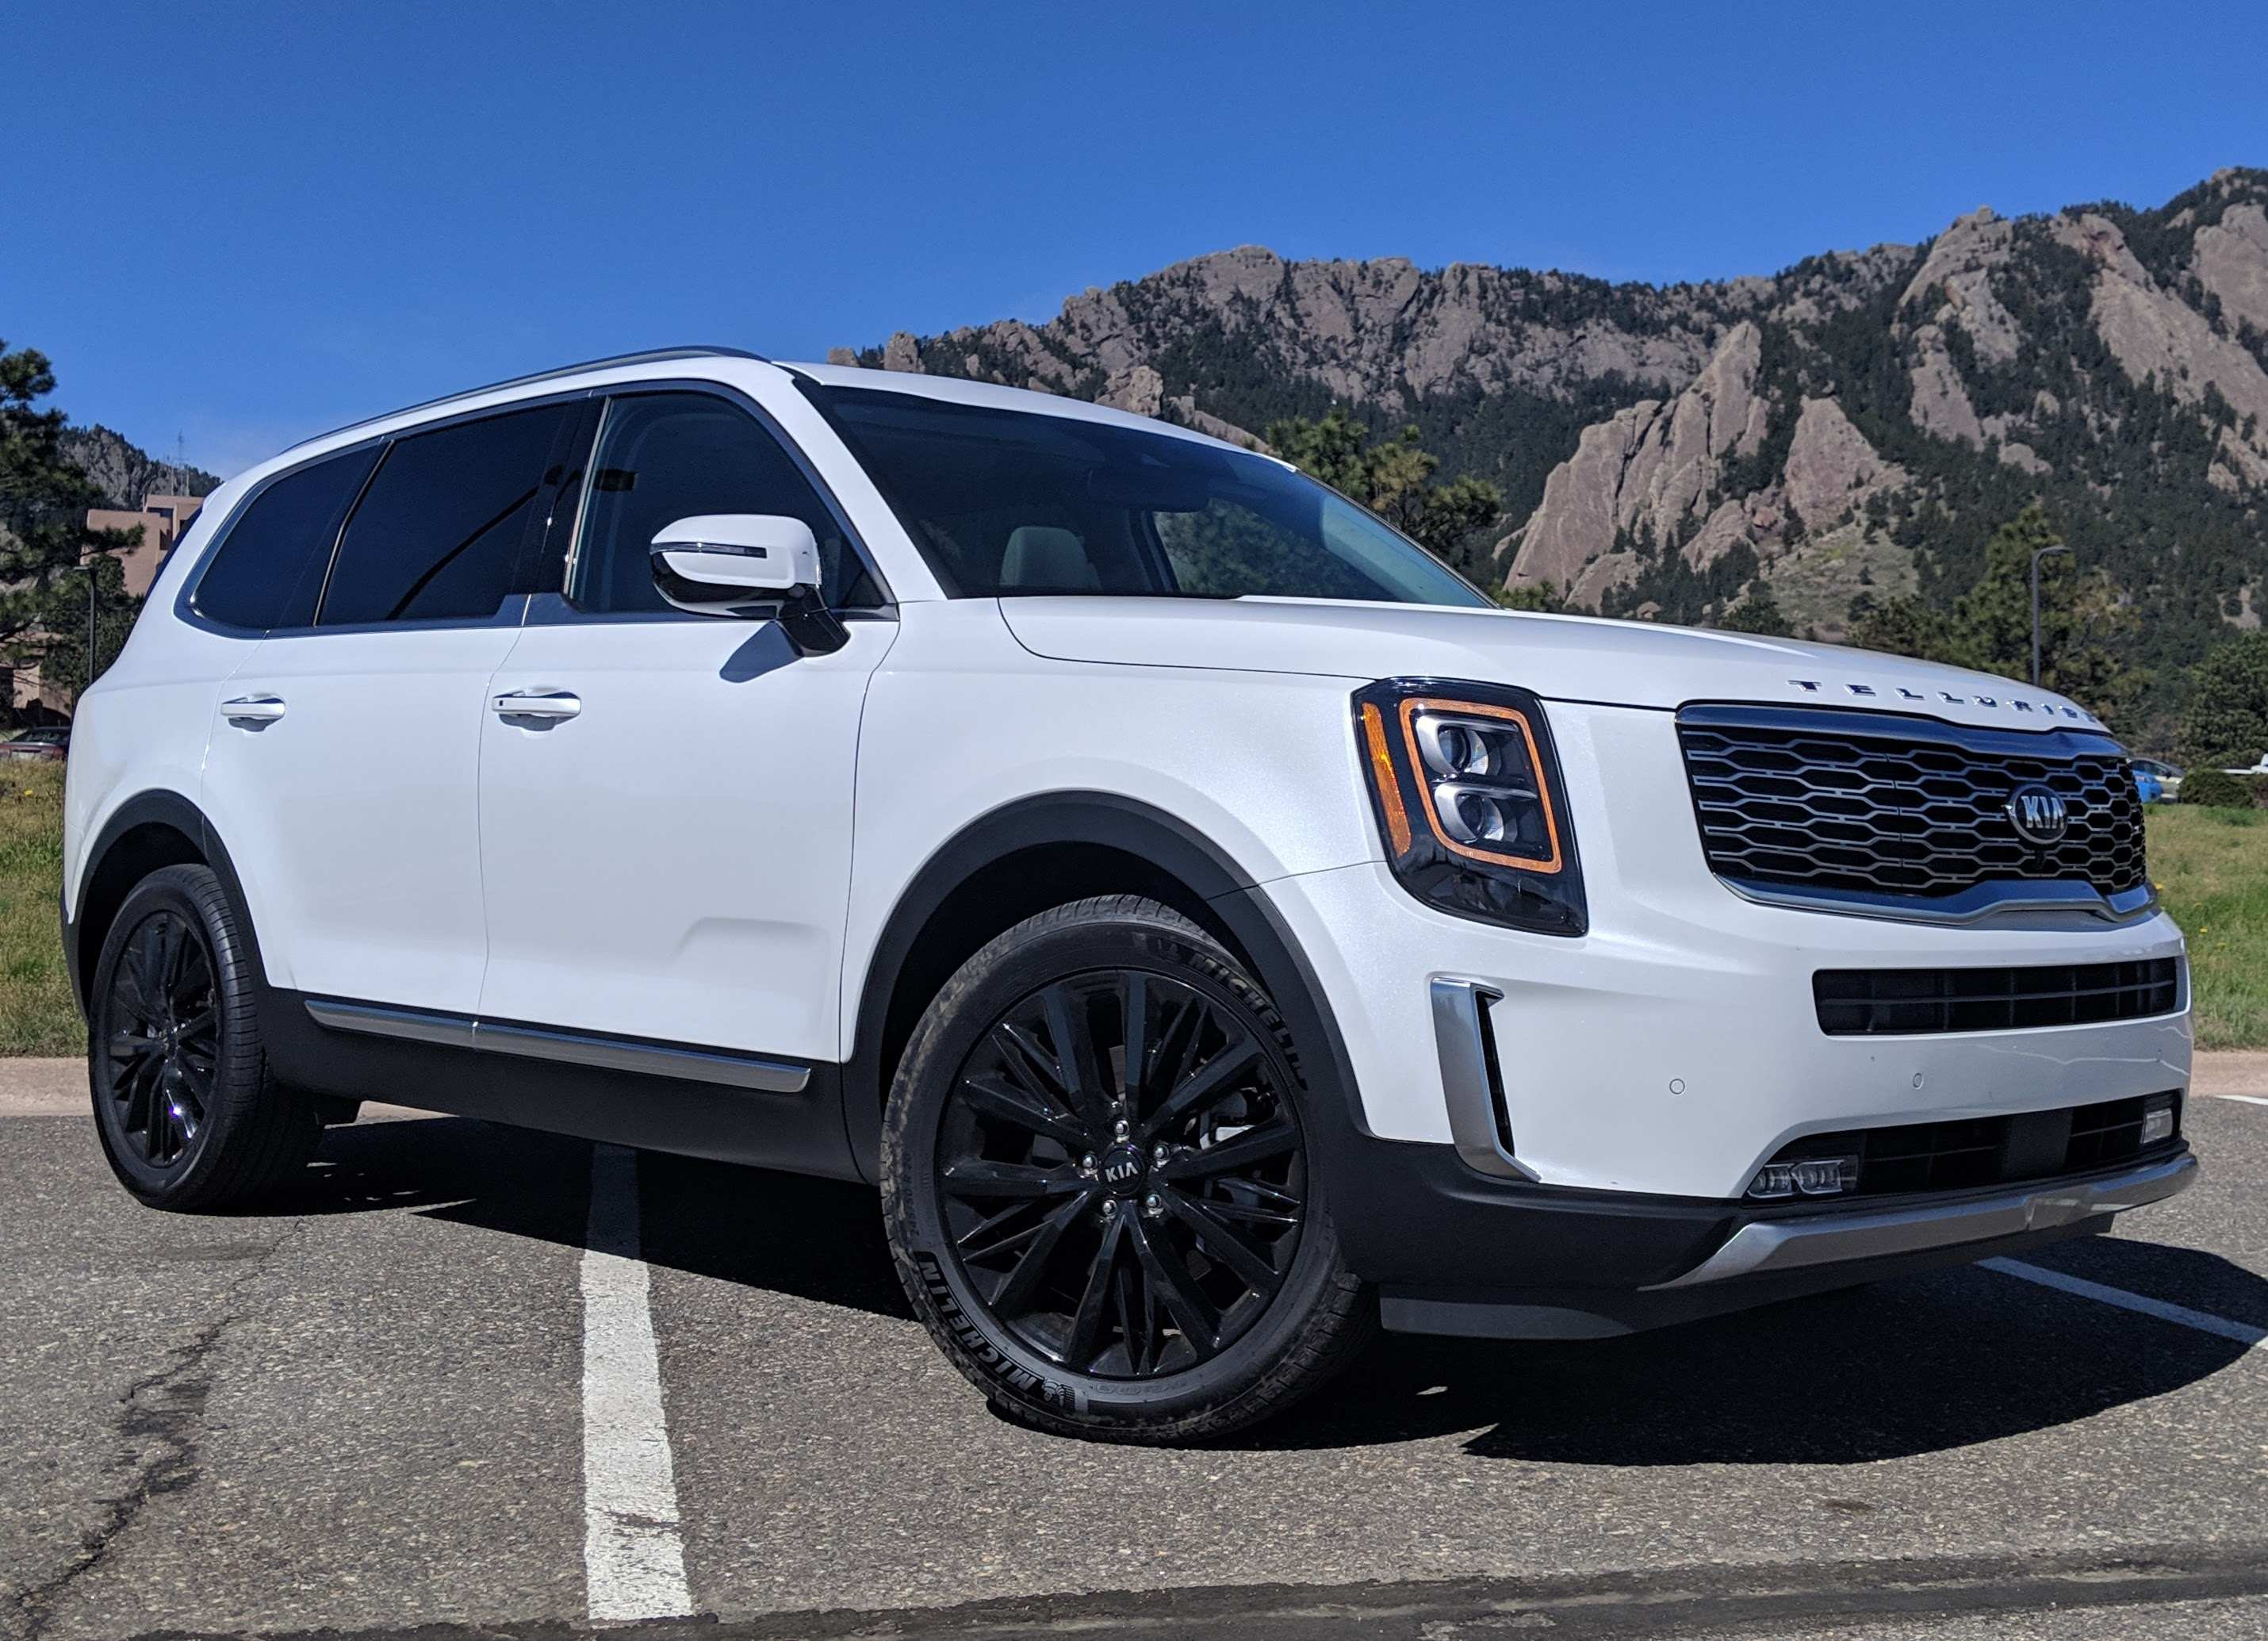 84 The 2020 Kia Telluride Youtube Exterior for 2020 Kia Telluride Youtube